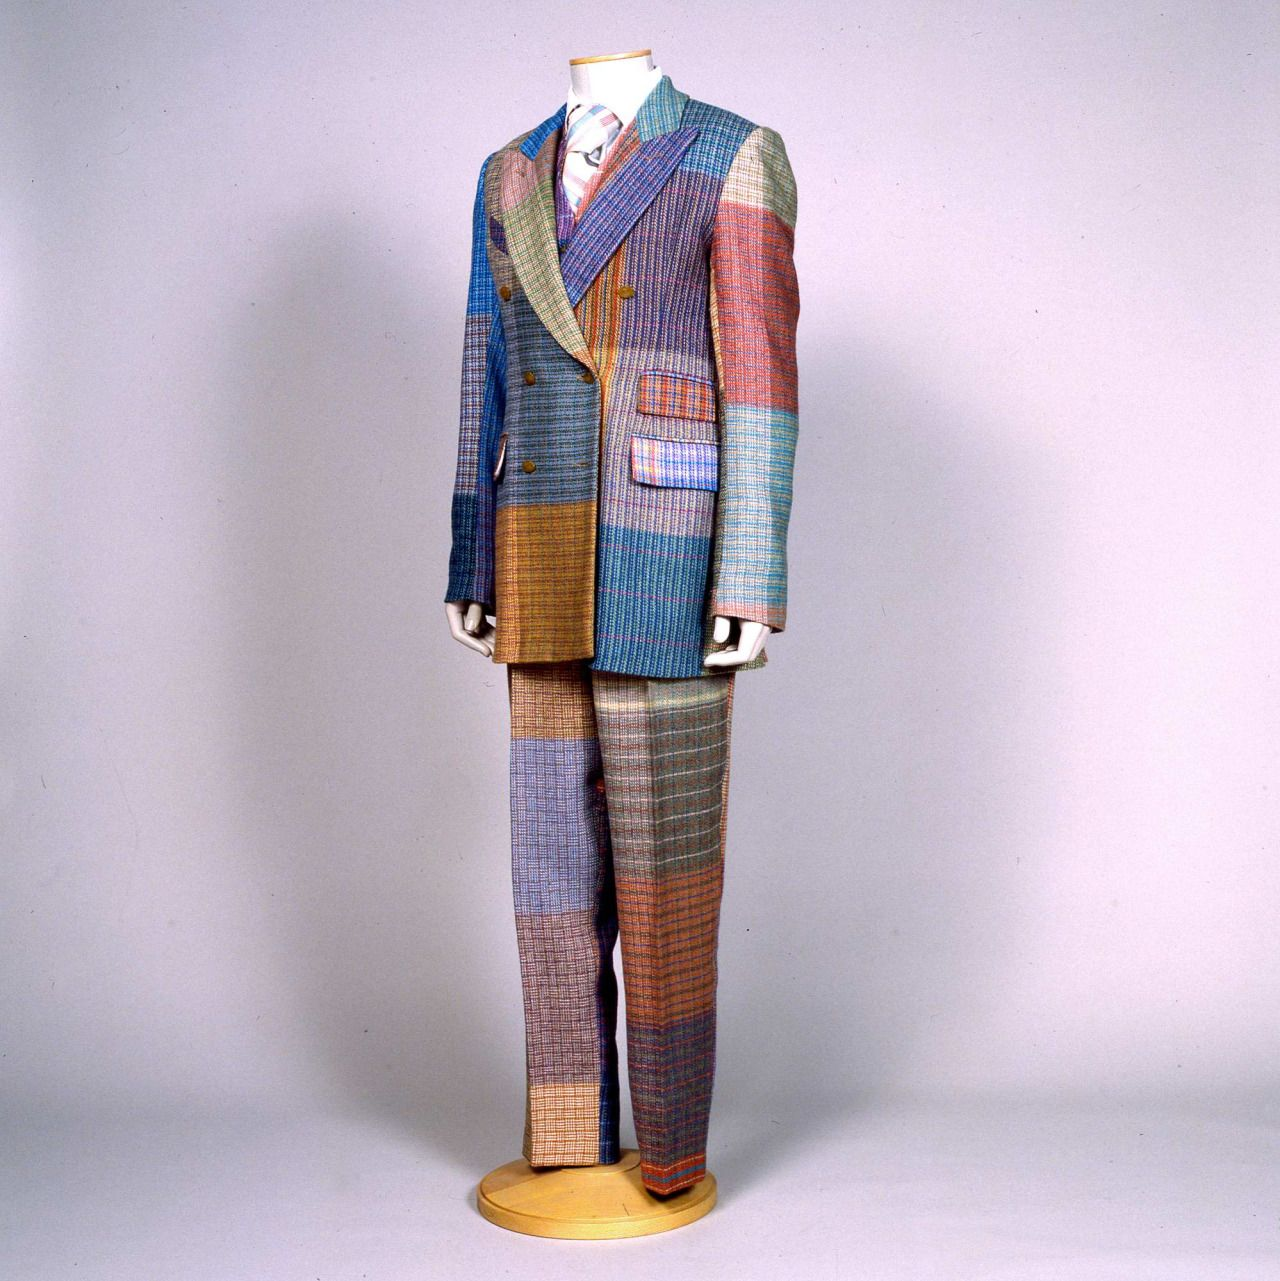 Men suit designed by Vivienne Westwood (1941-), London, 1985-90.  Collection Galleria del Costume di Palazzo Pitti.